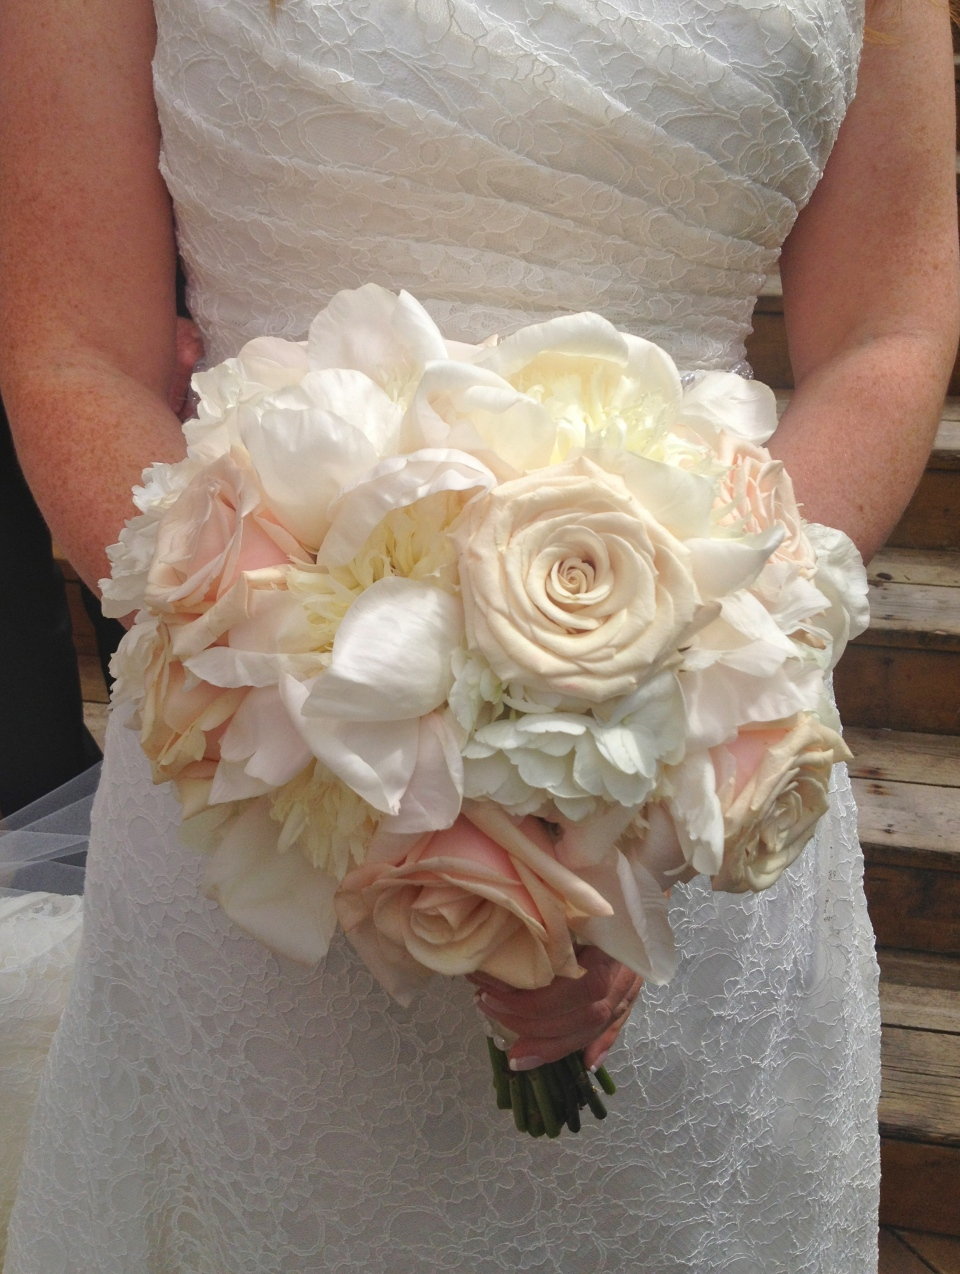 Bridal bouquet of white peonies, hydrangea & champagne roses